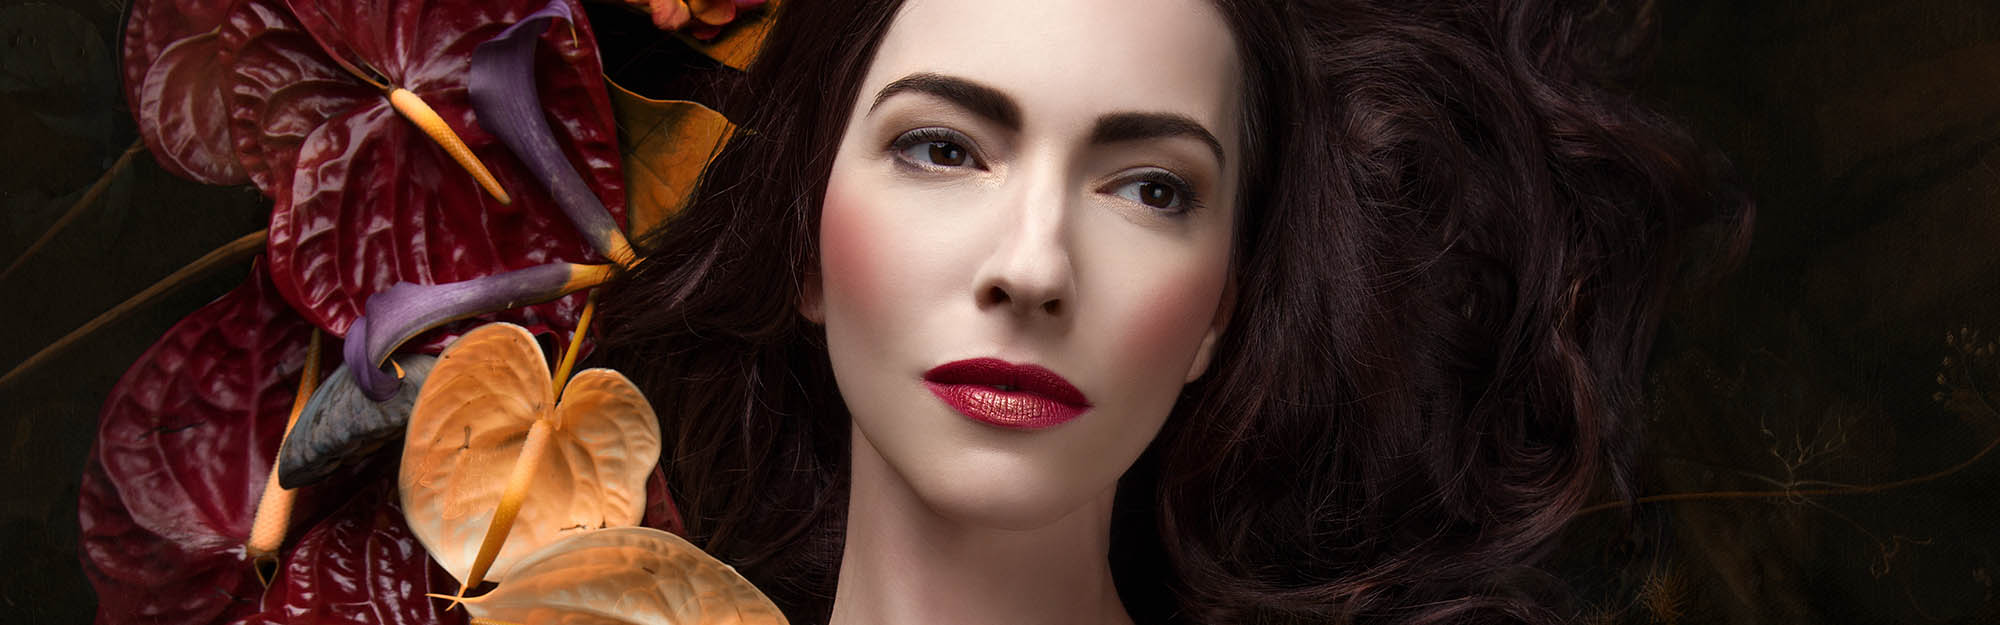 Chrysta Bell by Sylwia Makris_PROMO_PIC